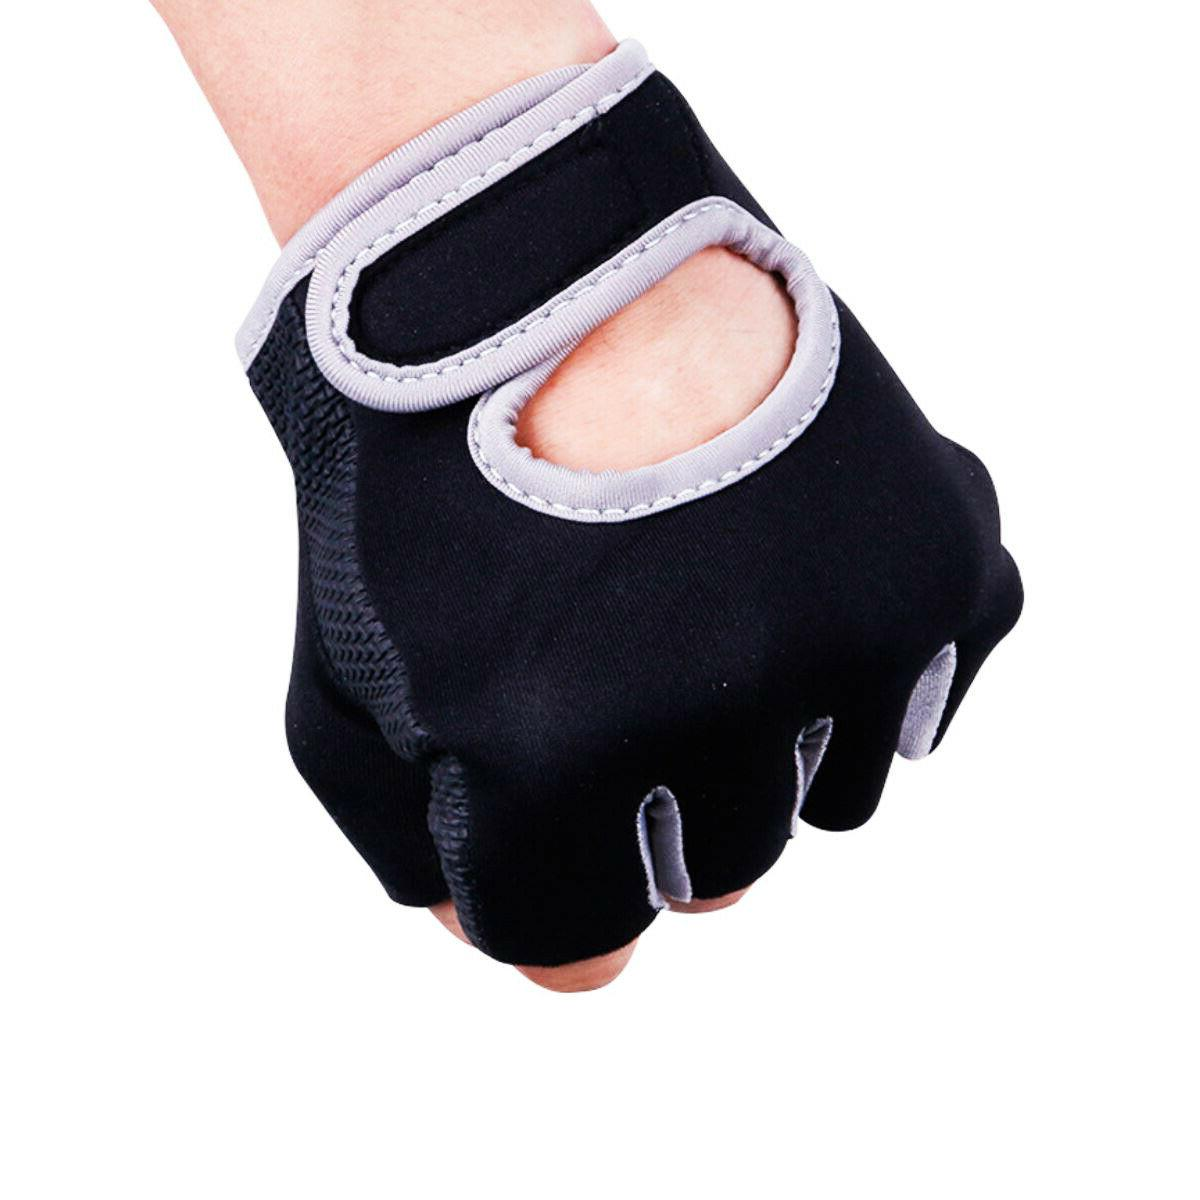 Women Finger Work Out Sport Weight